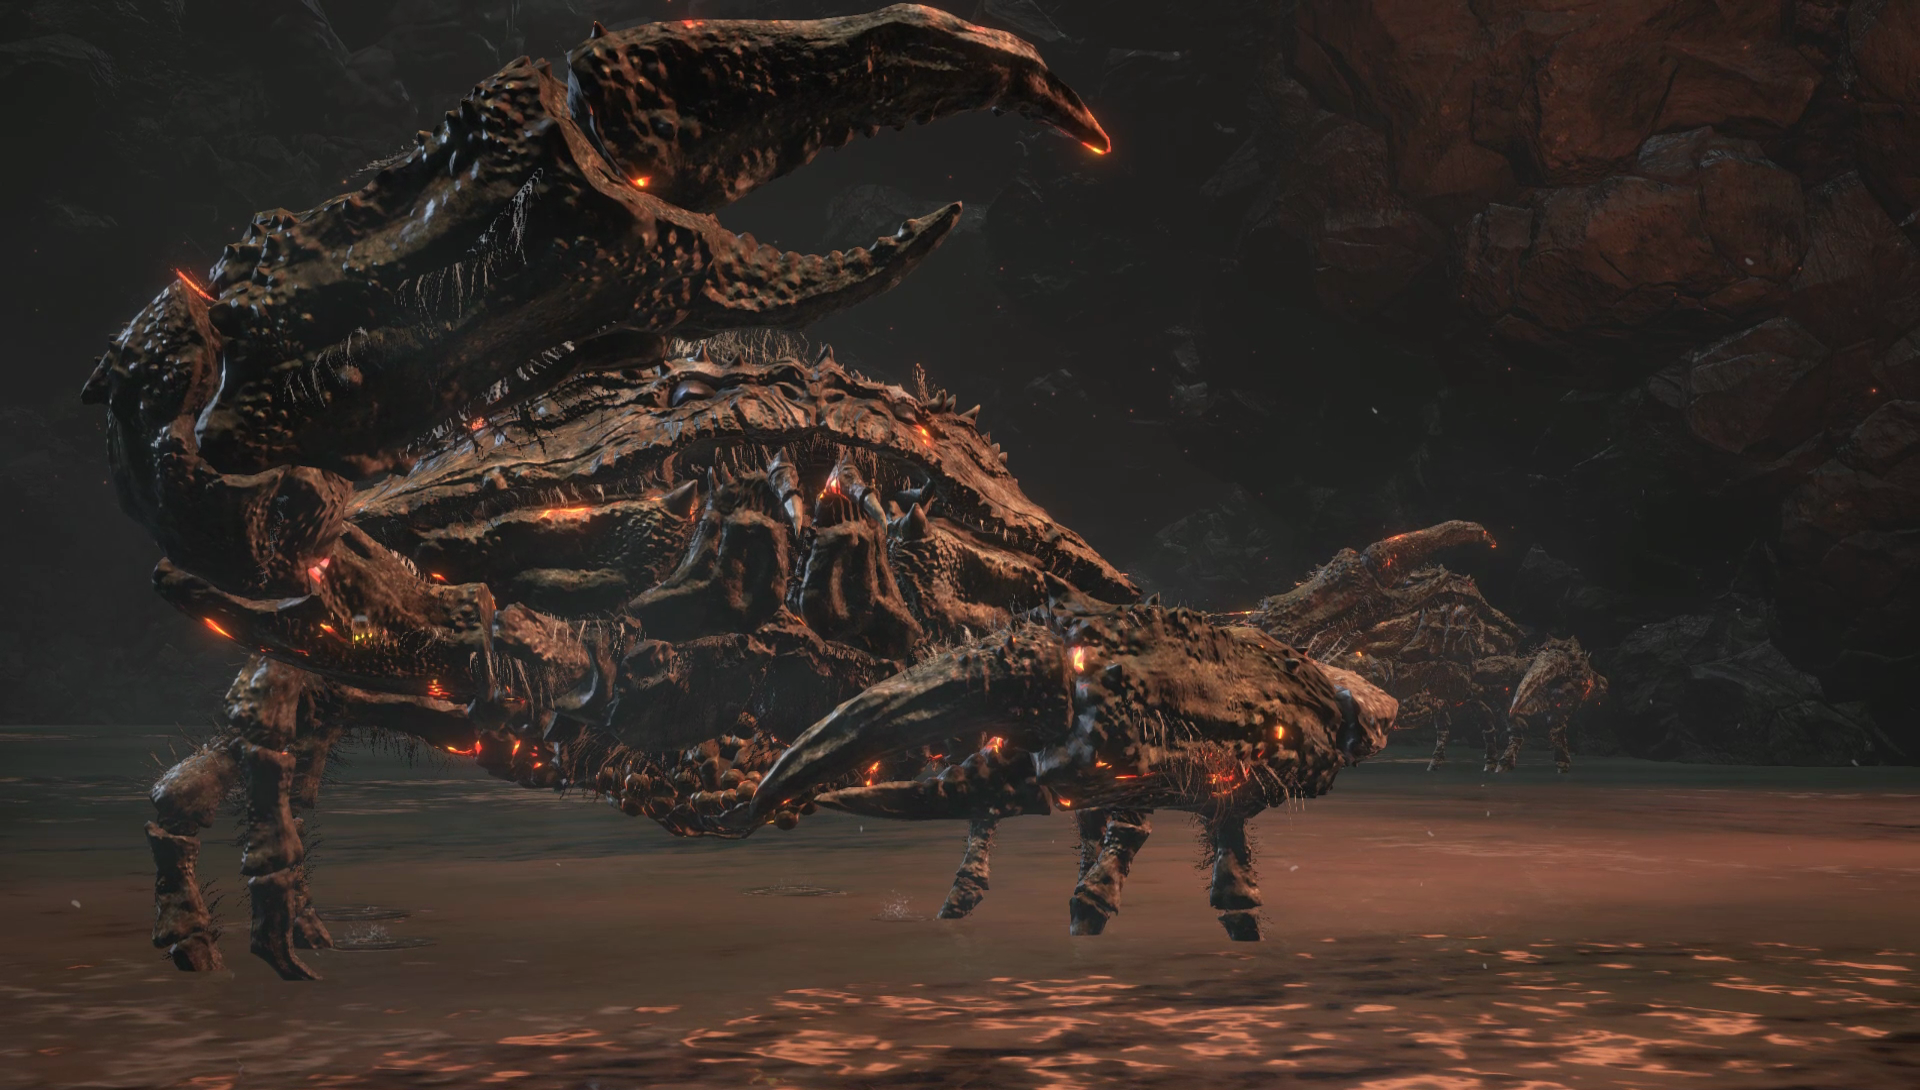 The mystery of the big dumb crabs infesting Dark Souls 3